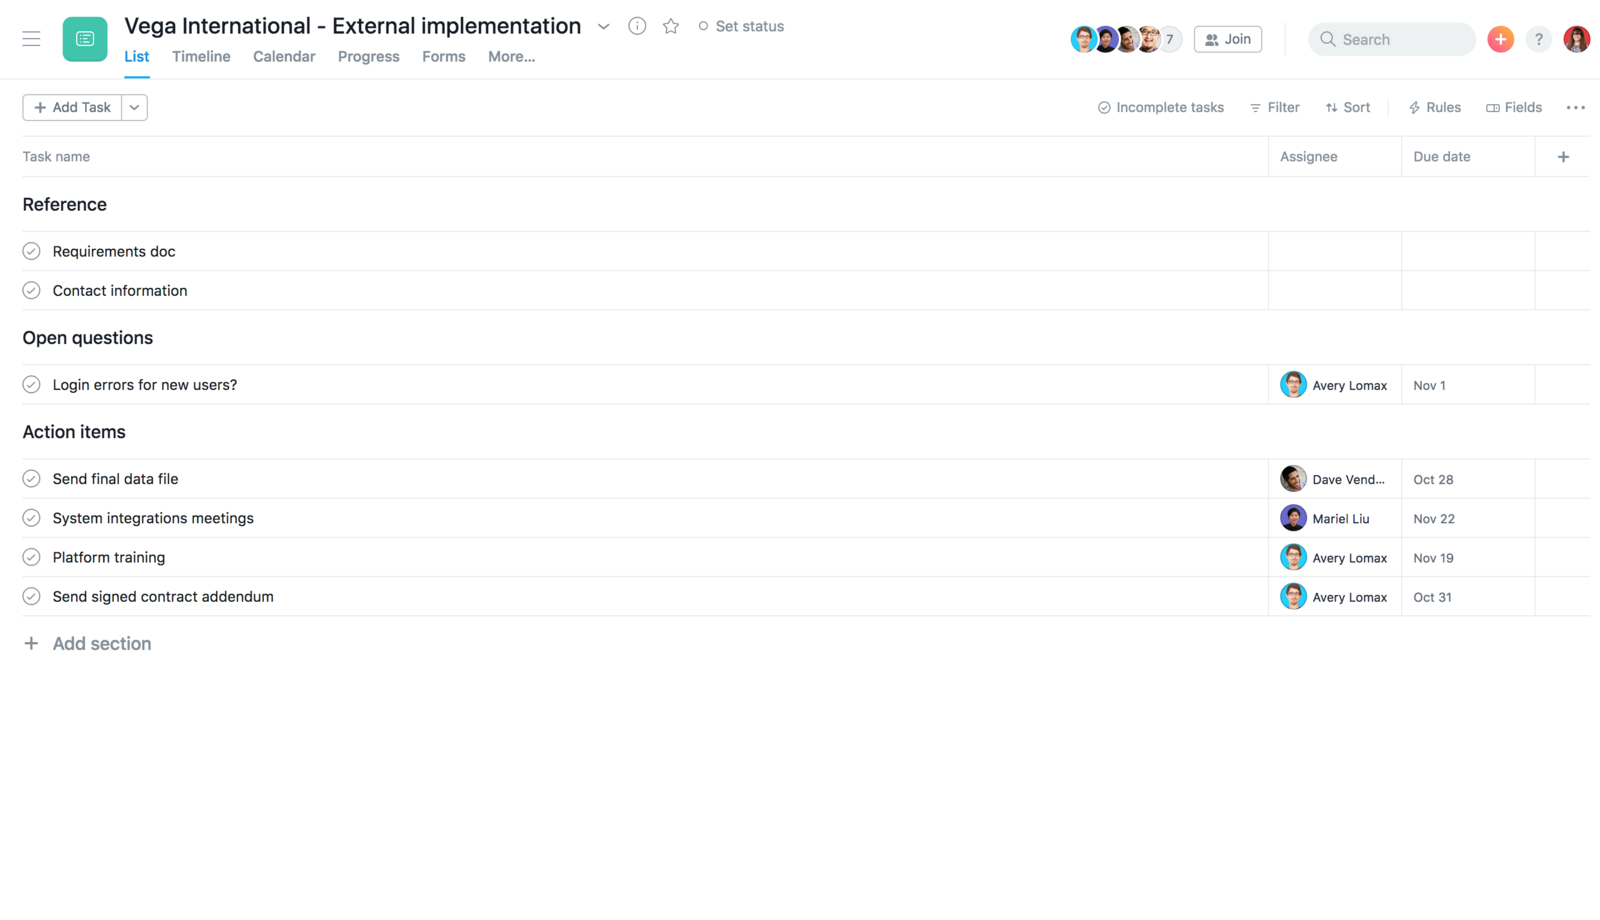 Create an external implementation template in Asana to duplicate